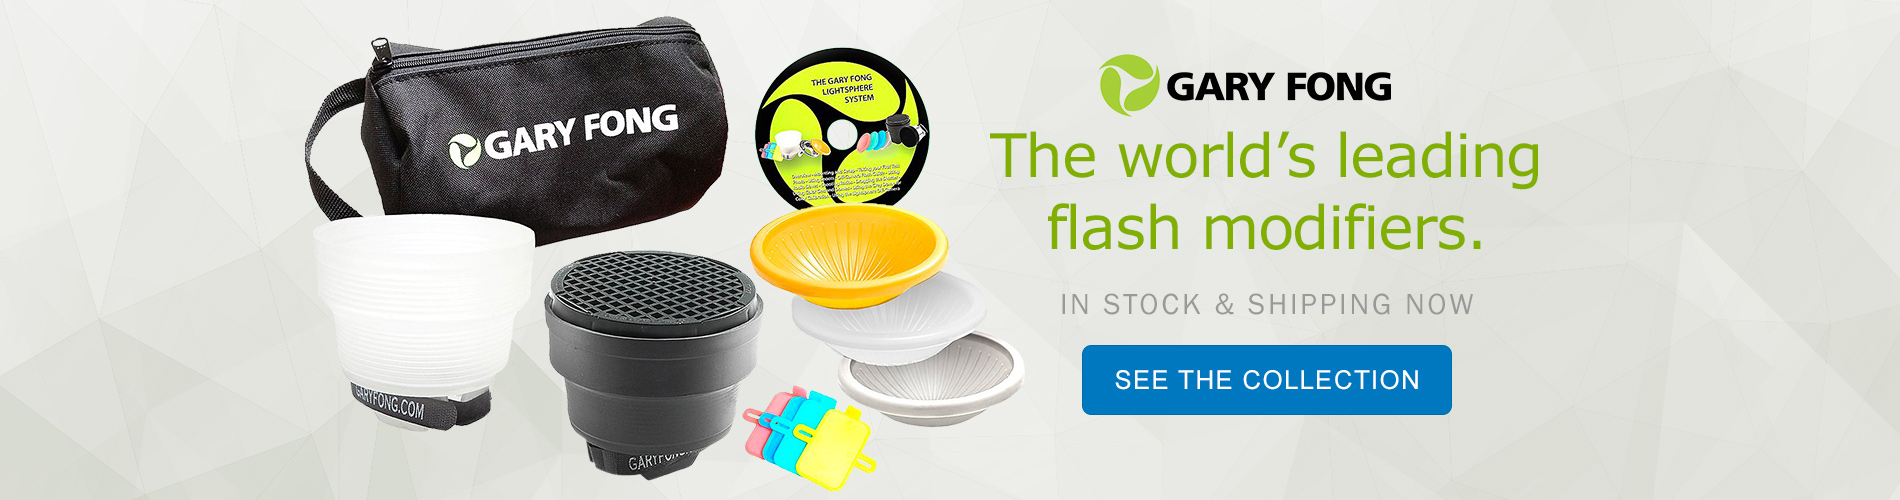 Gary Fong - The world's leading flash modifiers. In stock & shipping now. See the Collection.